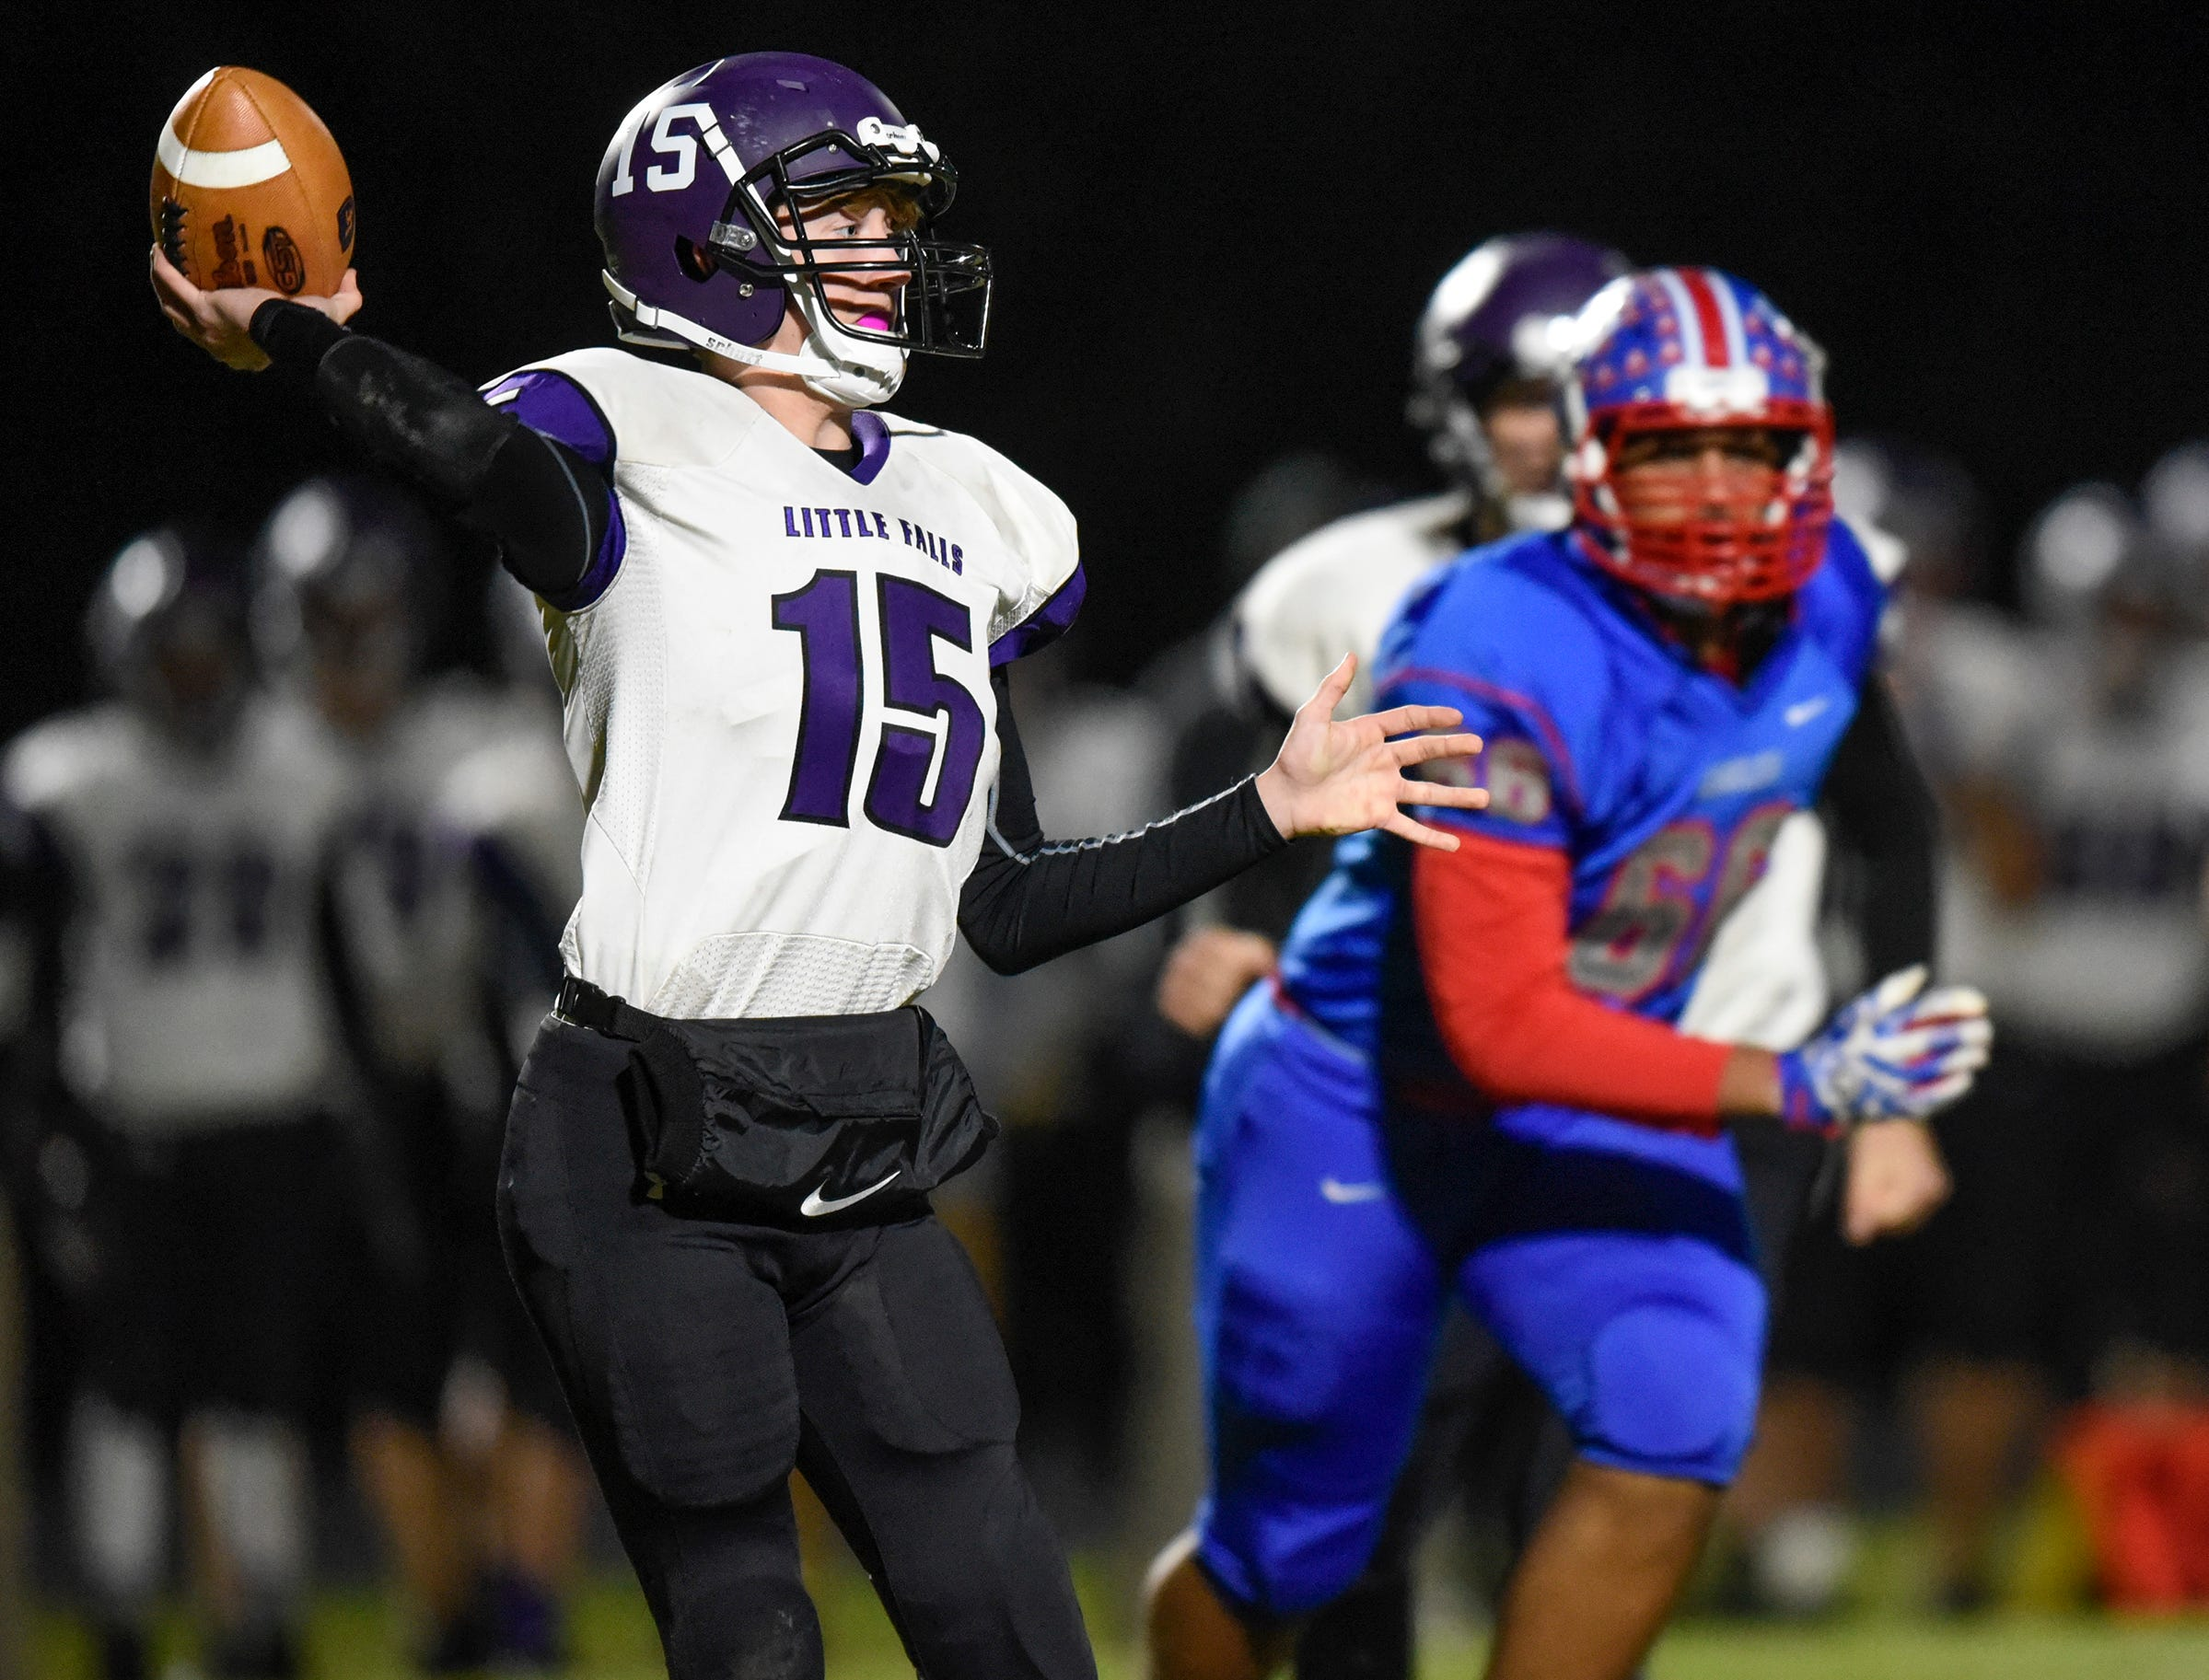 Little Falls quarterback Austin Udy drops back to pass during the Tuesday, Oct. 23, game against Apollo in St. Cloud.